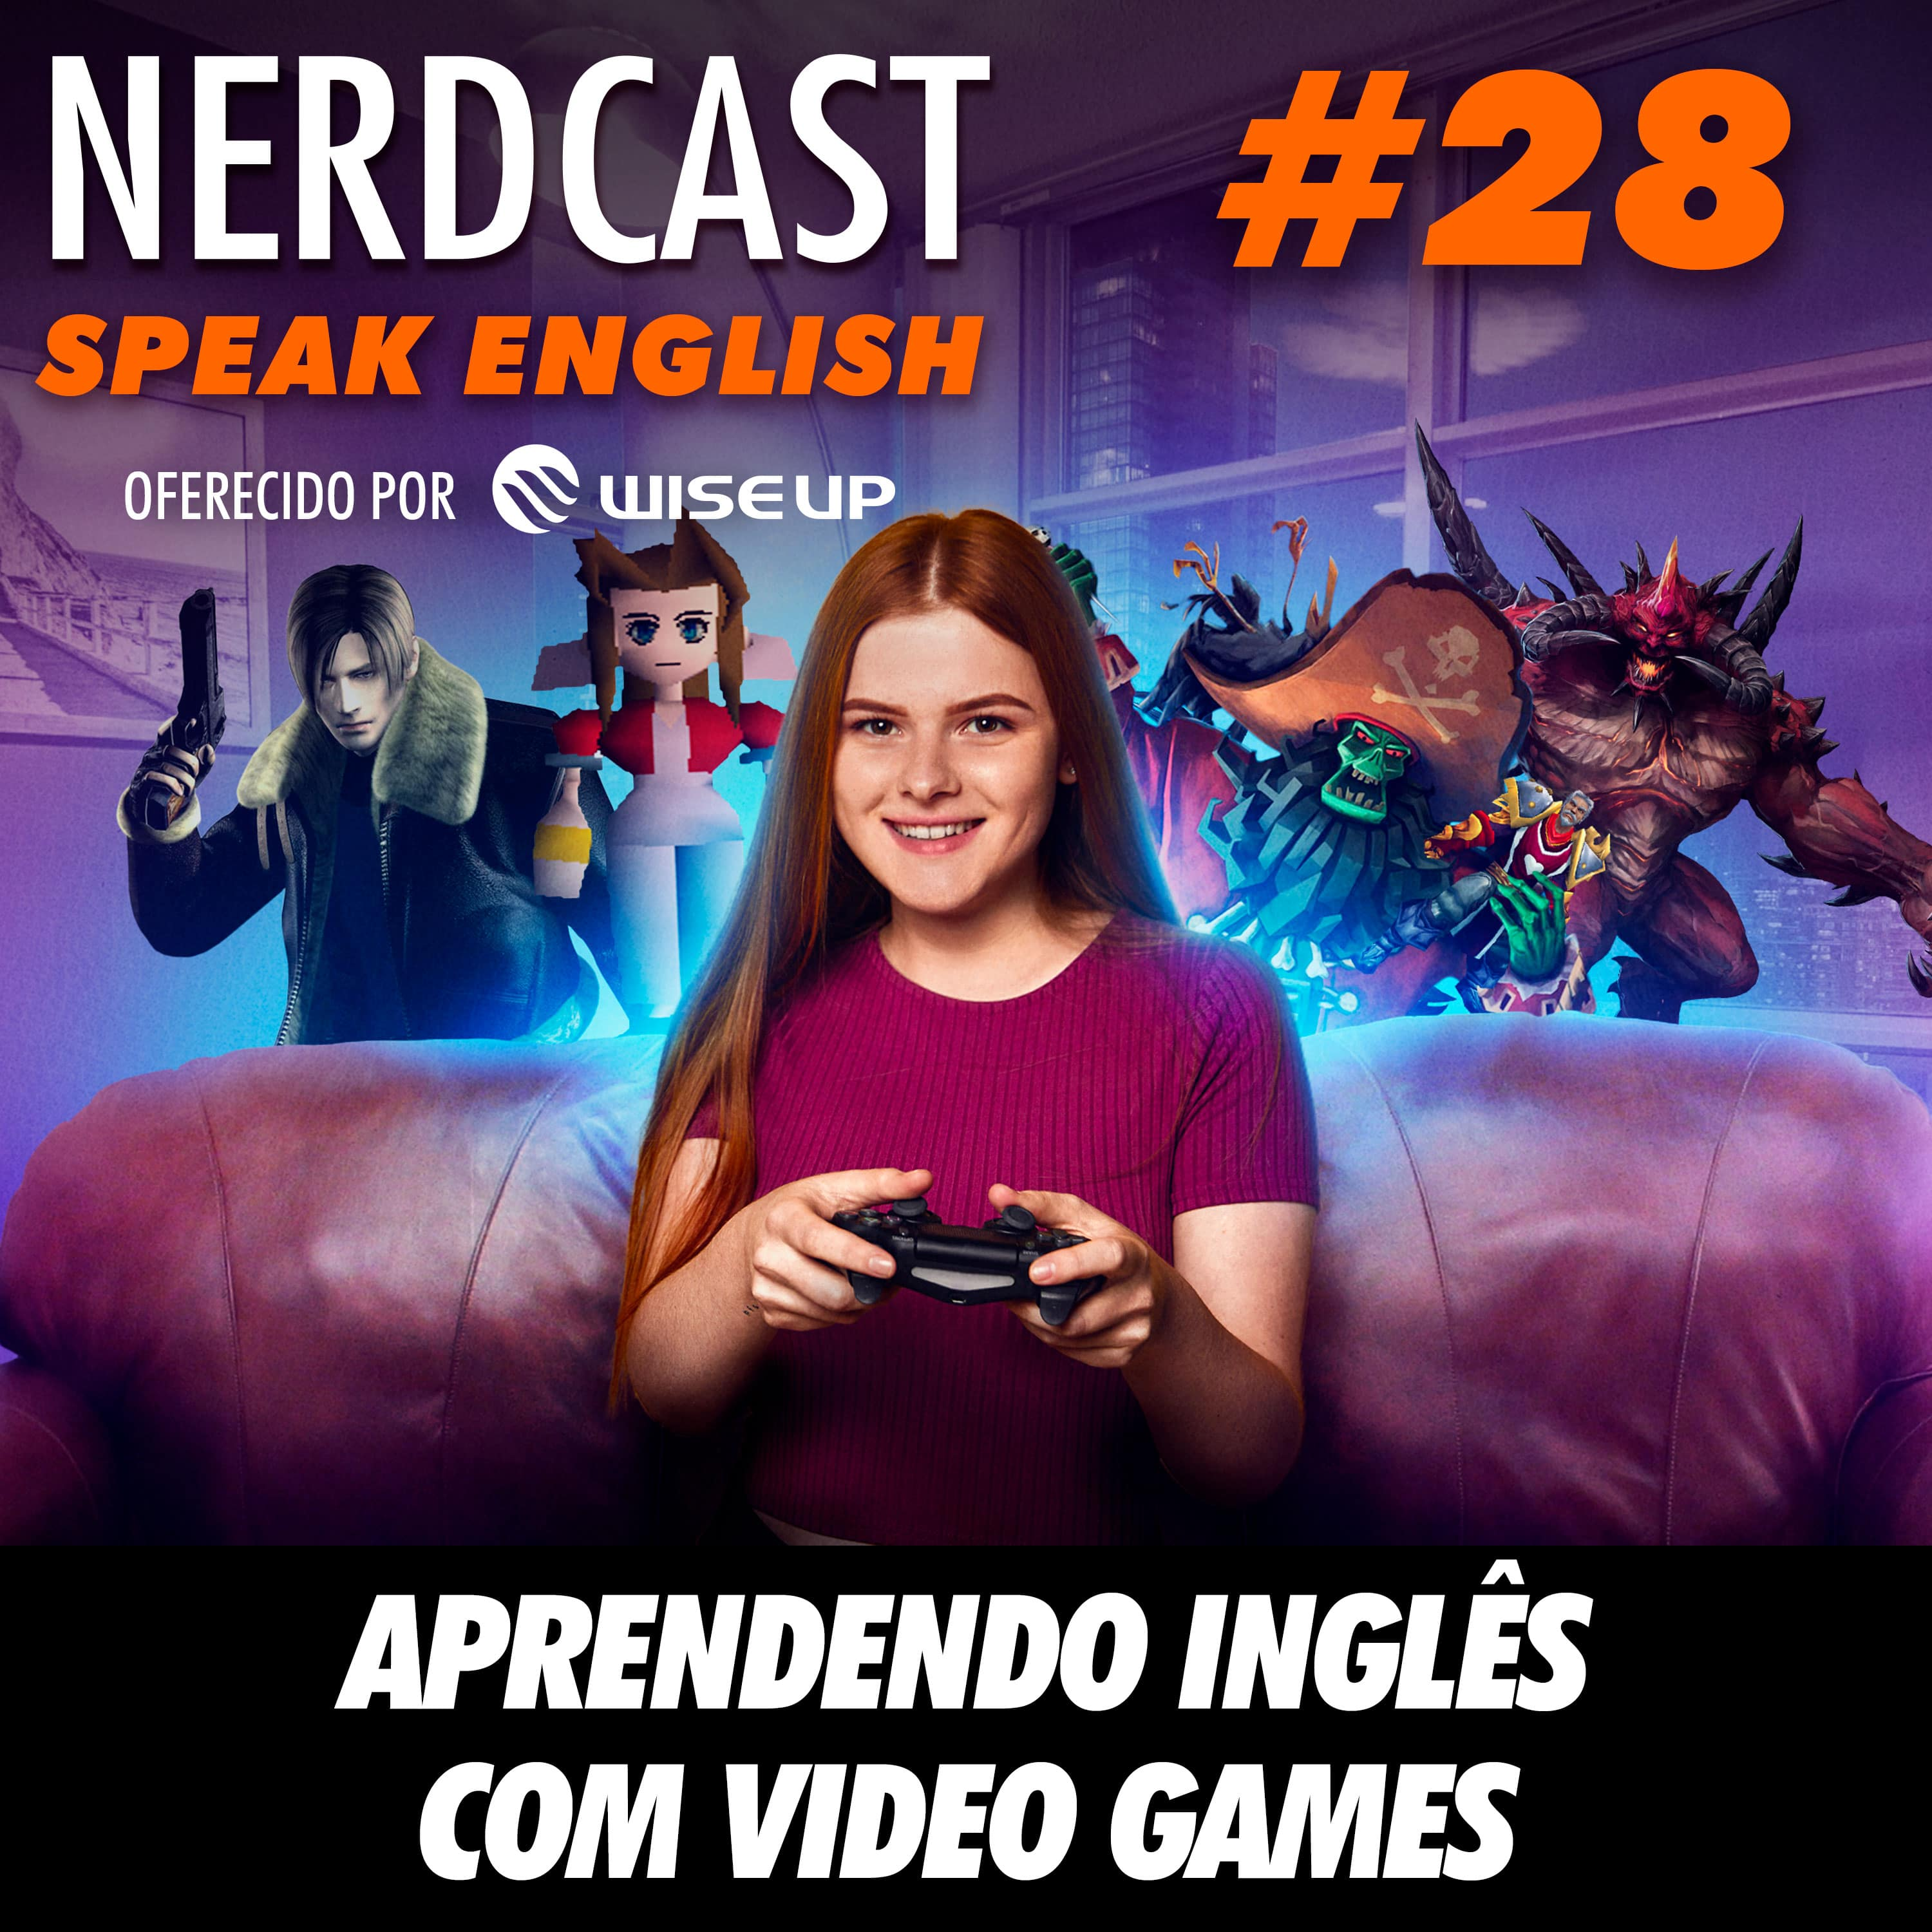 Speak English 28 - Aprendendo inglês com video games